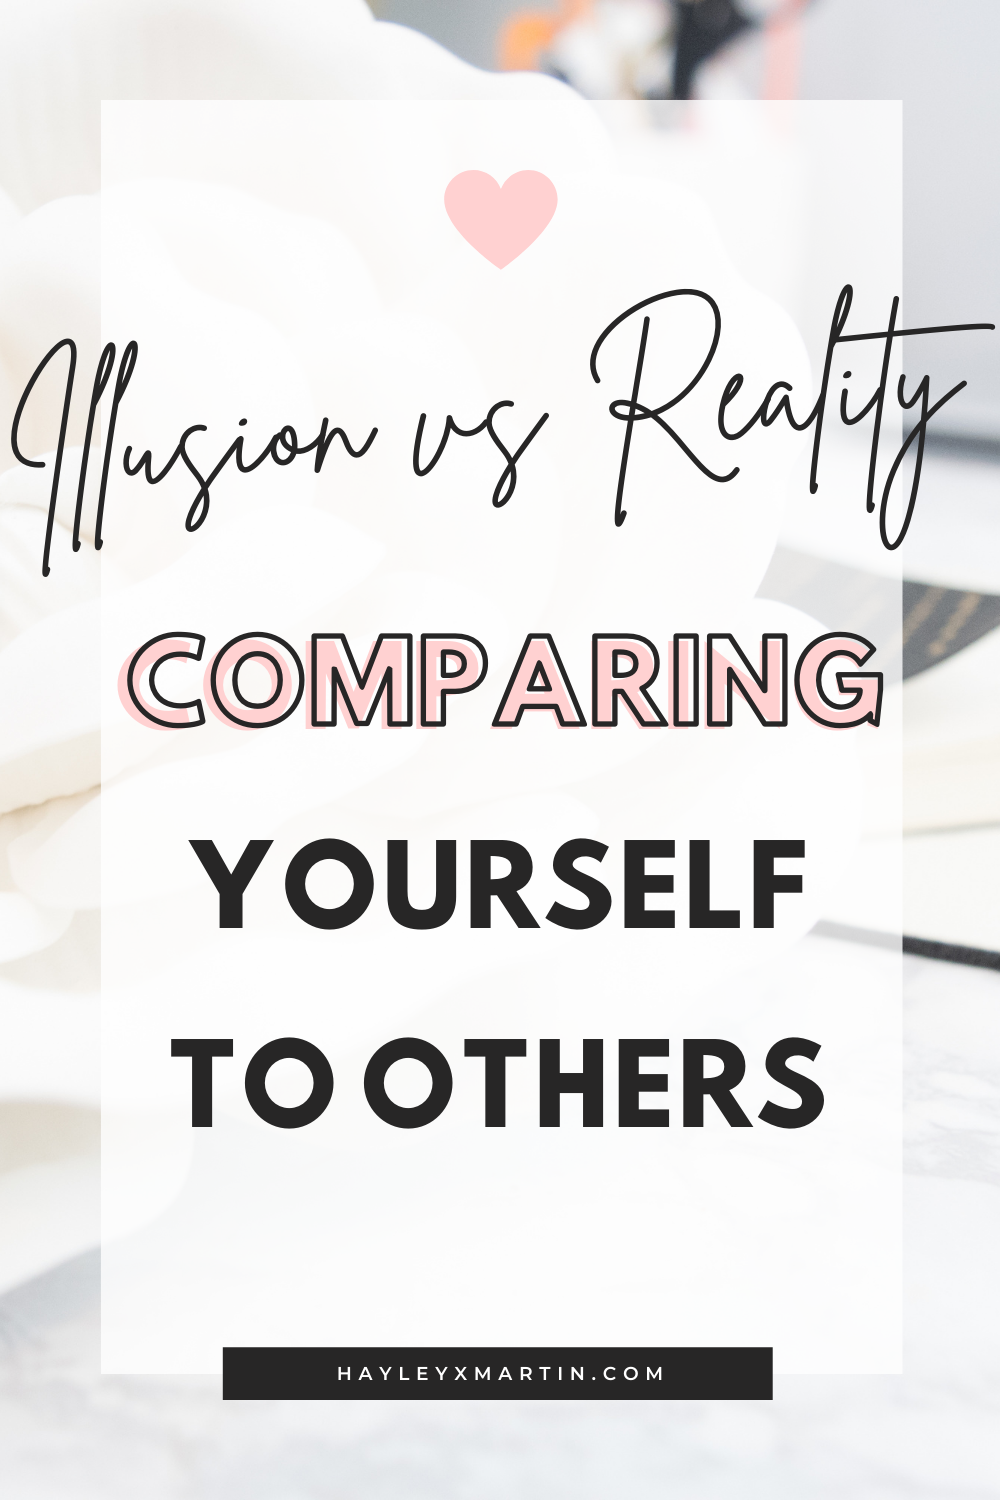 Illusion vs Reality | Comparing yourself to others